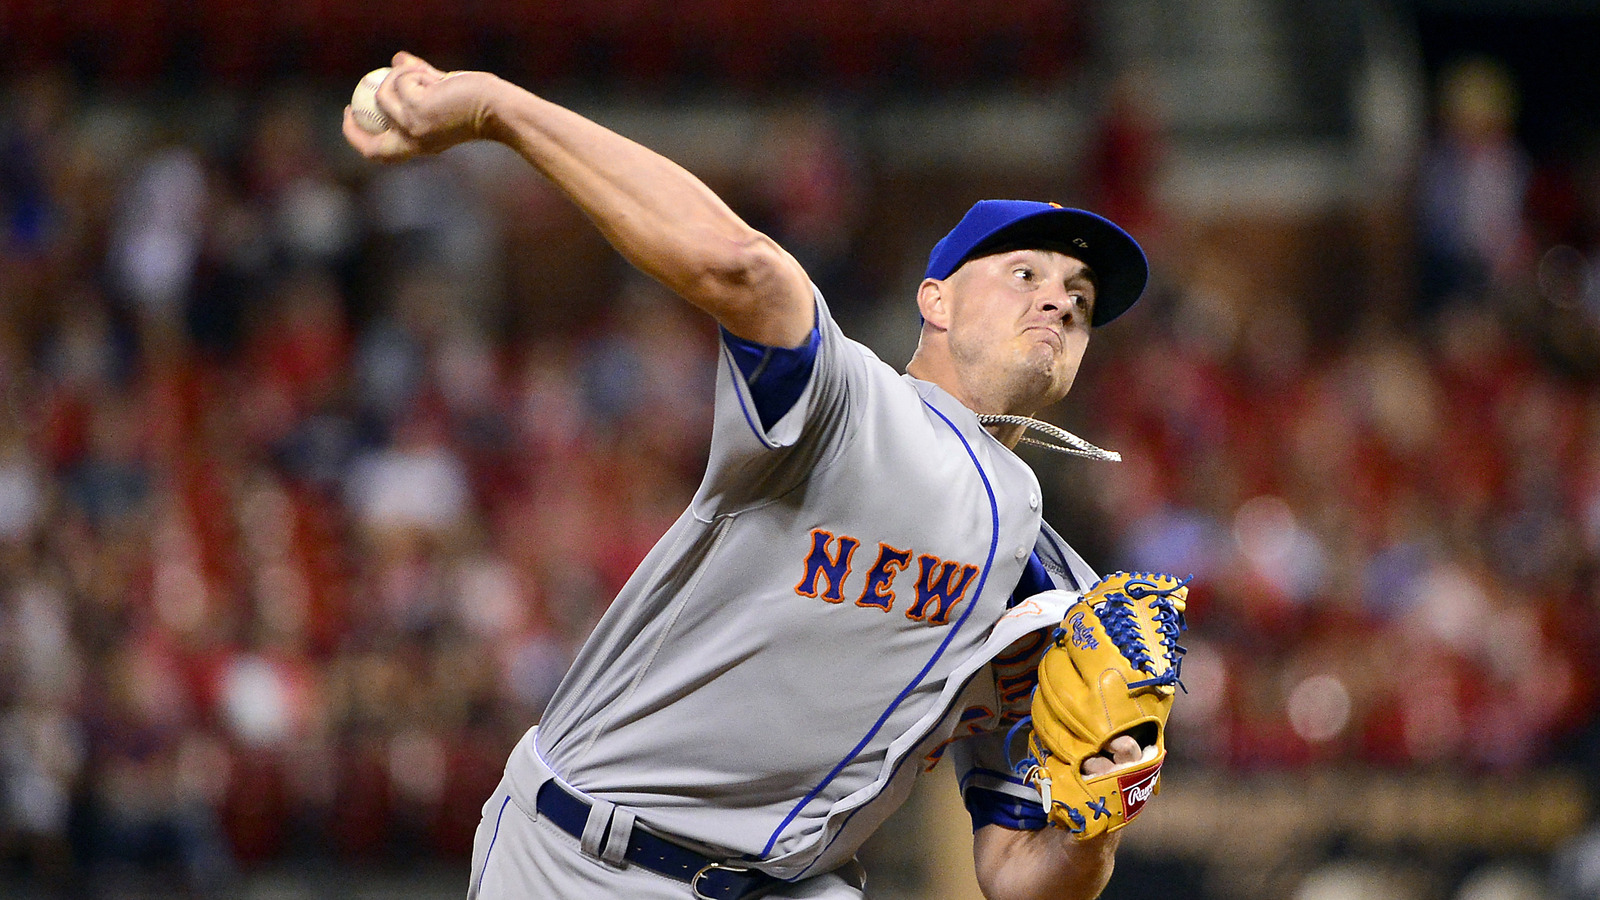 Report dodgers interested in mets rp addison reed for Knights landing fishing report